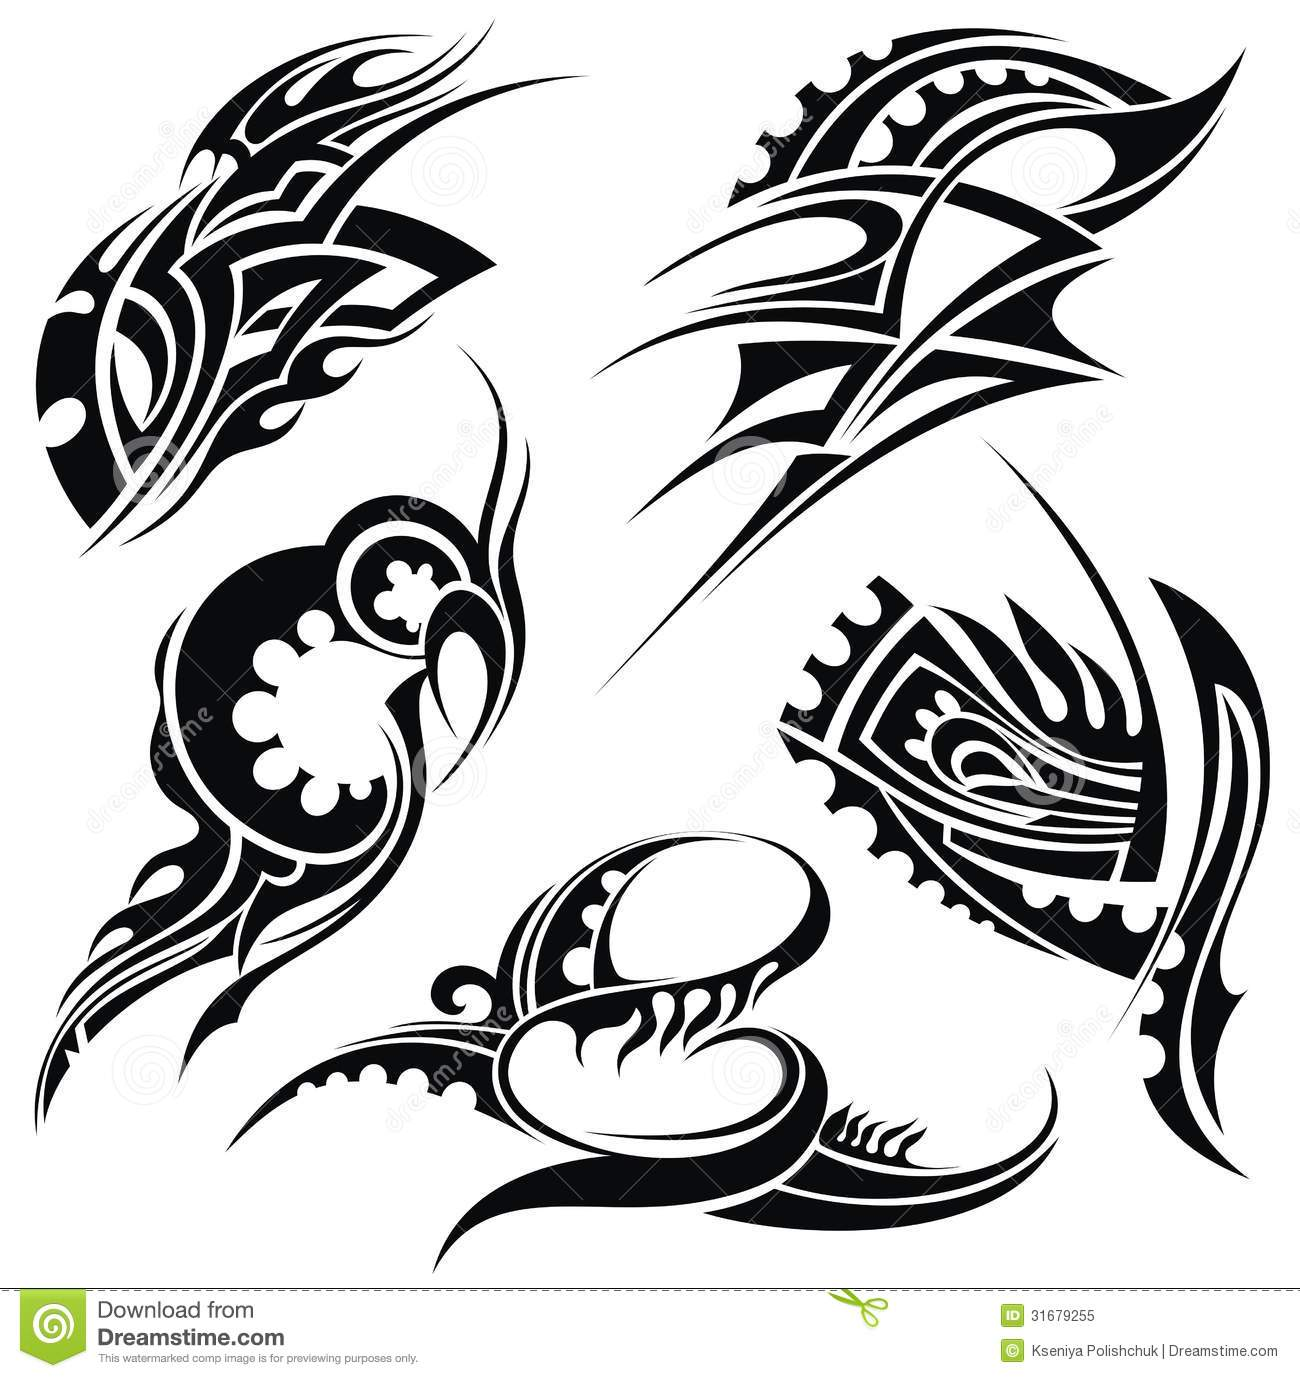 Tattoo Designs Vector Free Download: Design Elements: Tribal Art Stock Vector